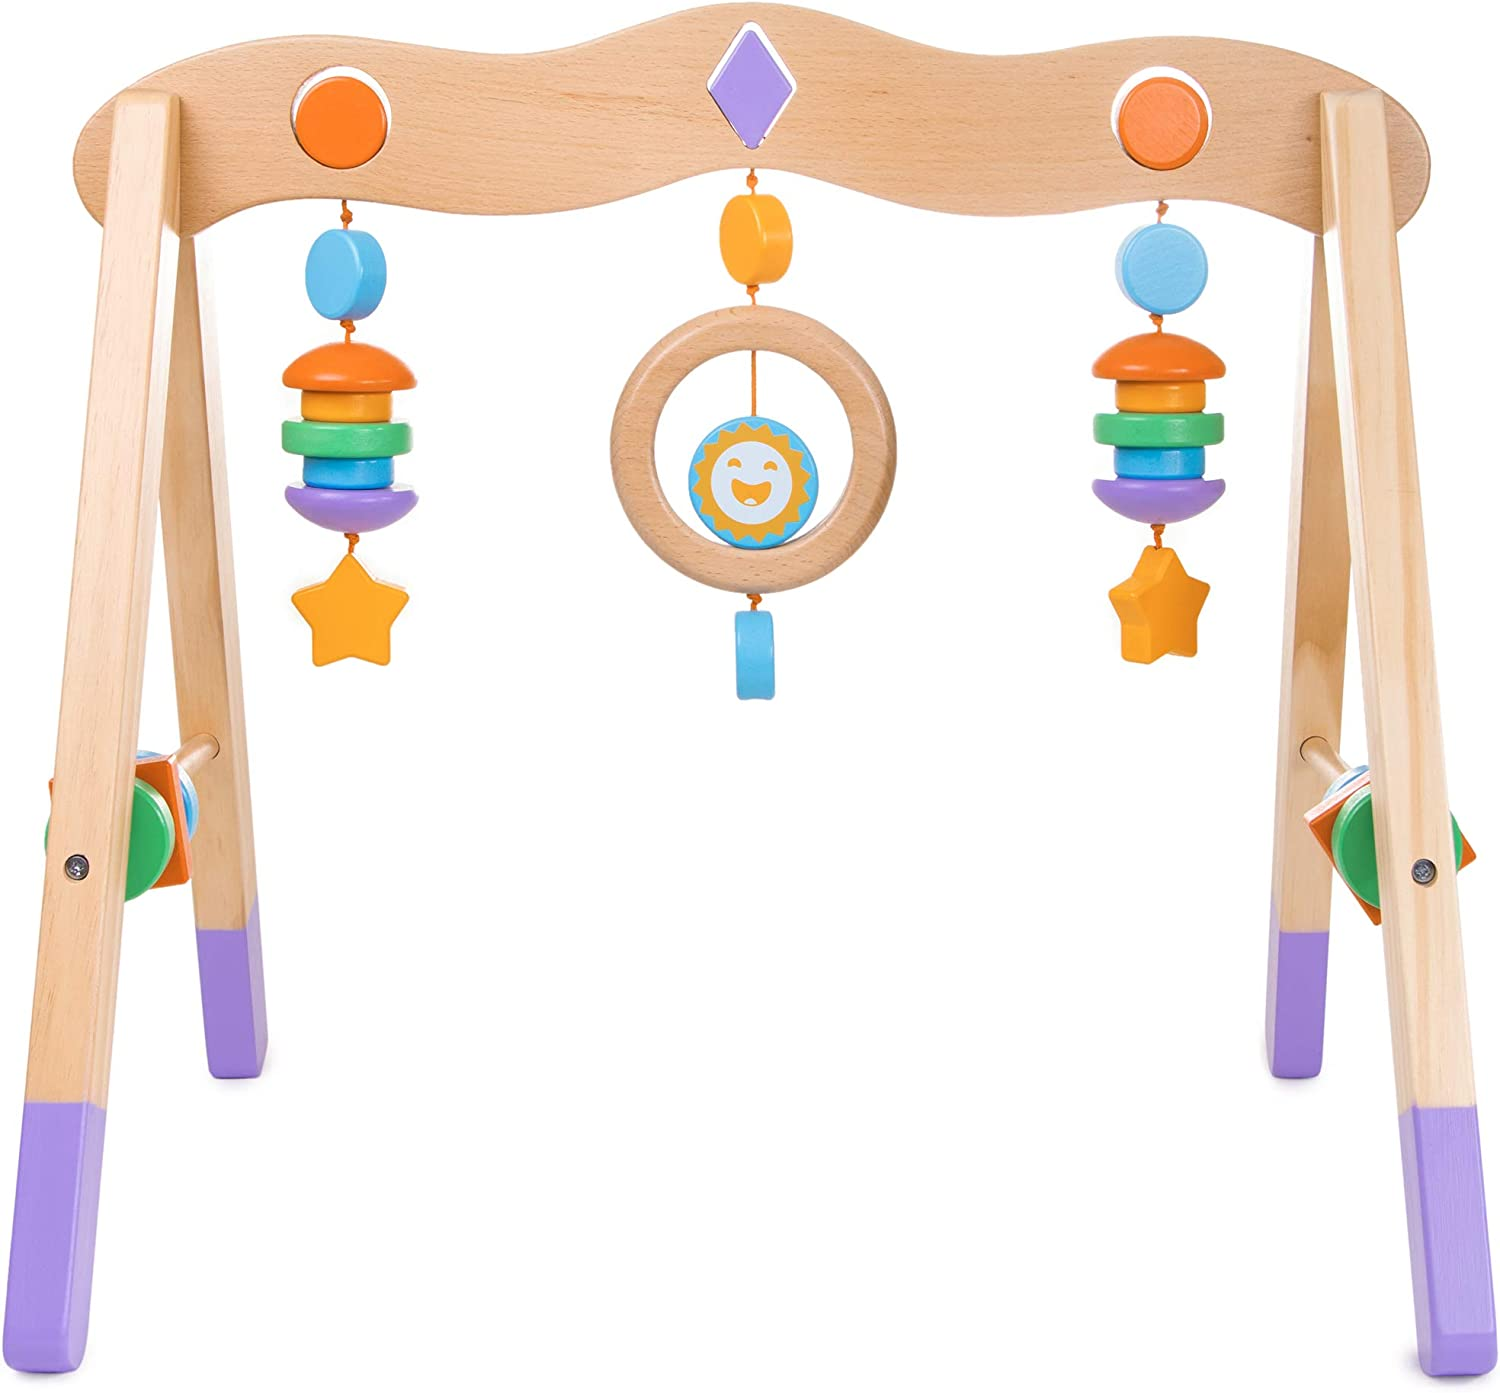 Little Olympians Wooden Baby Gym - Child Activity Center Newborns & Early Infants - Wood Mobile Interactive Play Station for Tummy Time - Educational & Developmental Learning Toys, Ages 0-5 Months